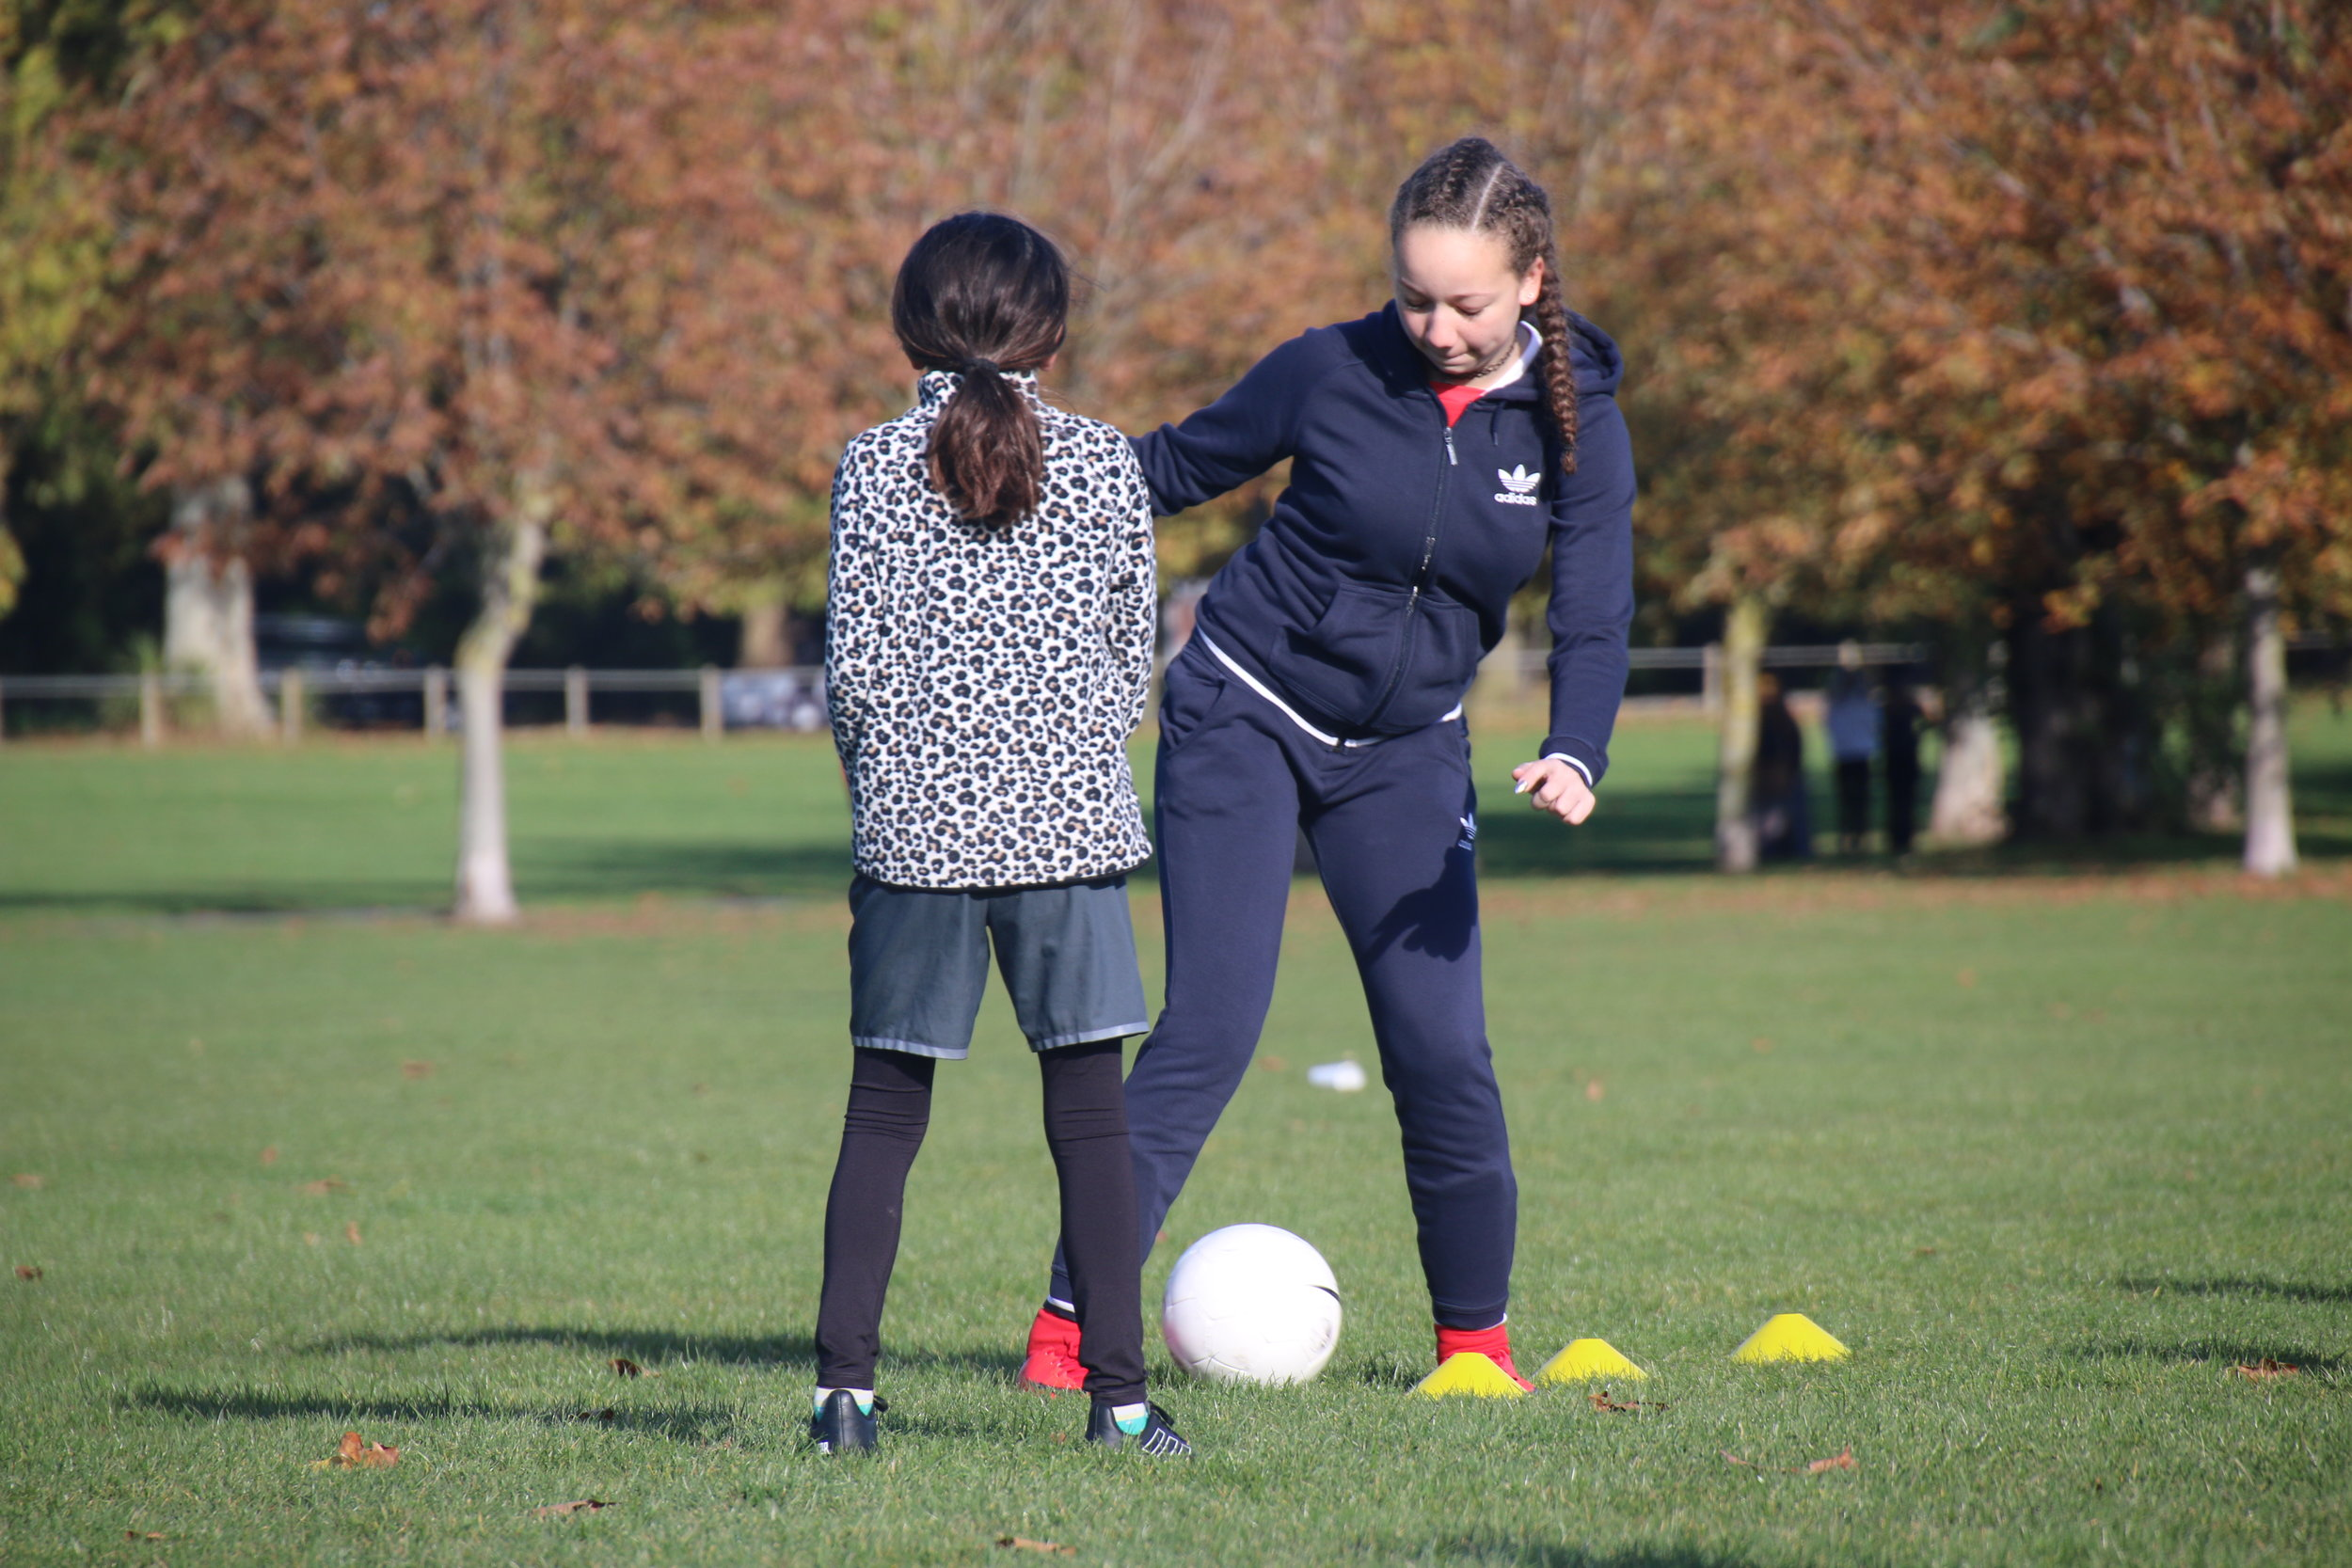 Girls United players are encouraged to be confident in using their skills both on and off the pitch